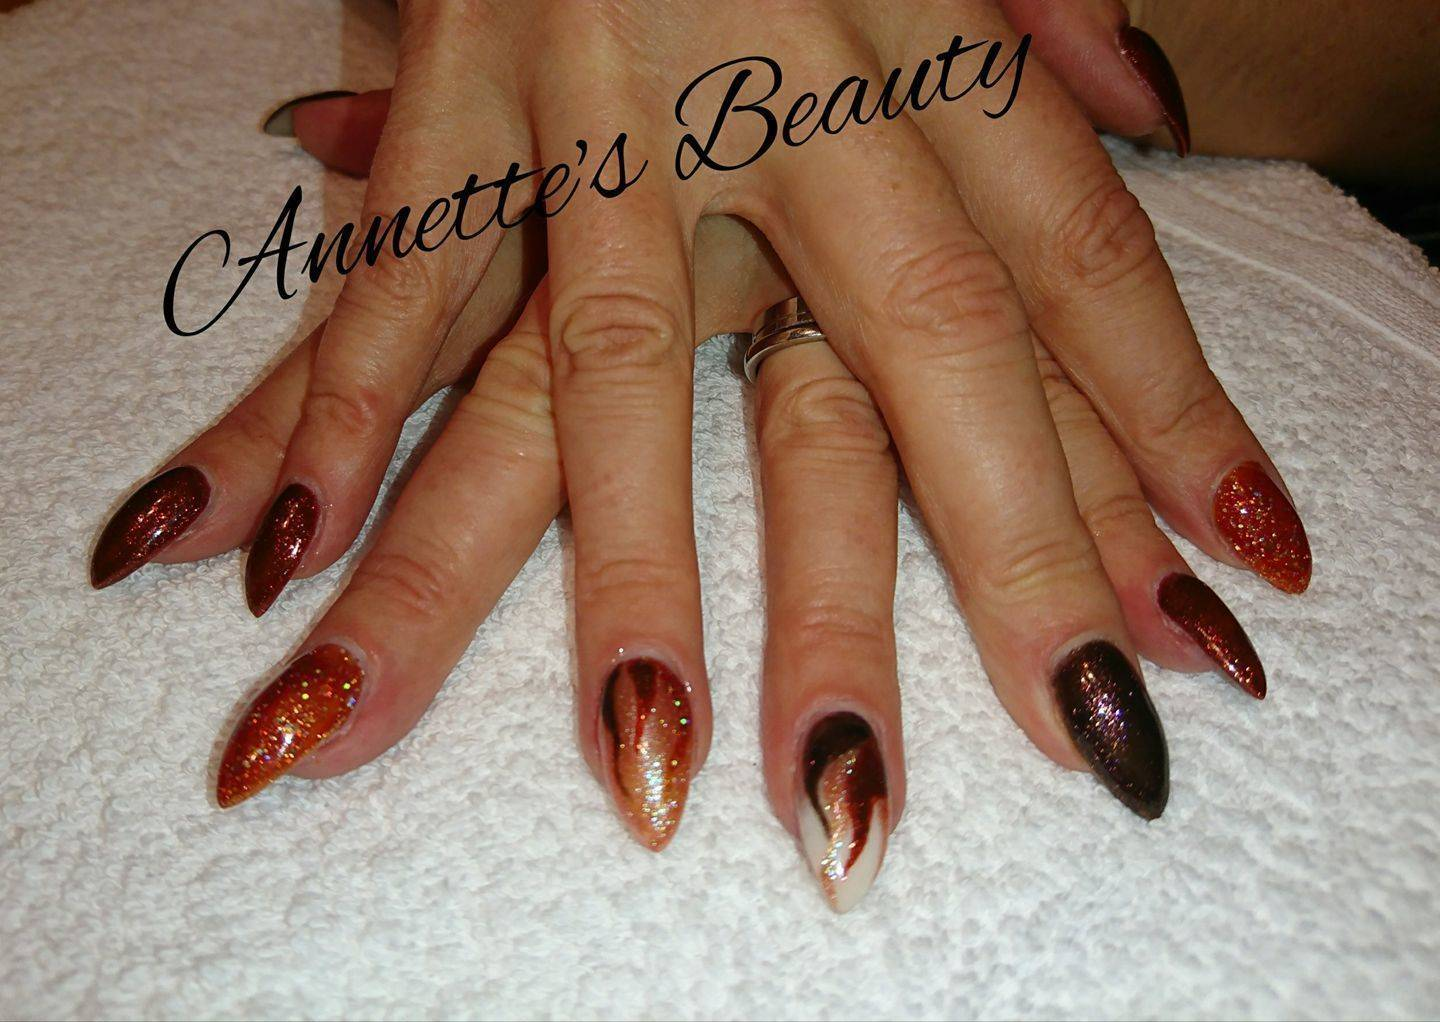 Acrylic extensions in the comfort of your own home. £20 per set with regular Polish or £25 with gel polish